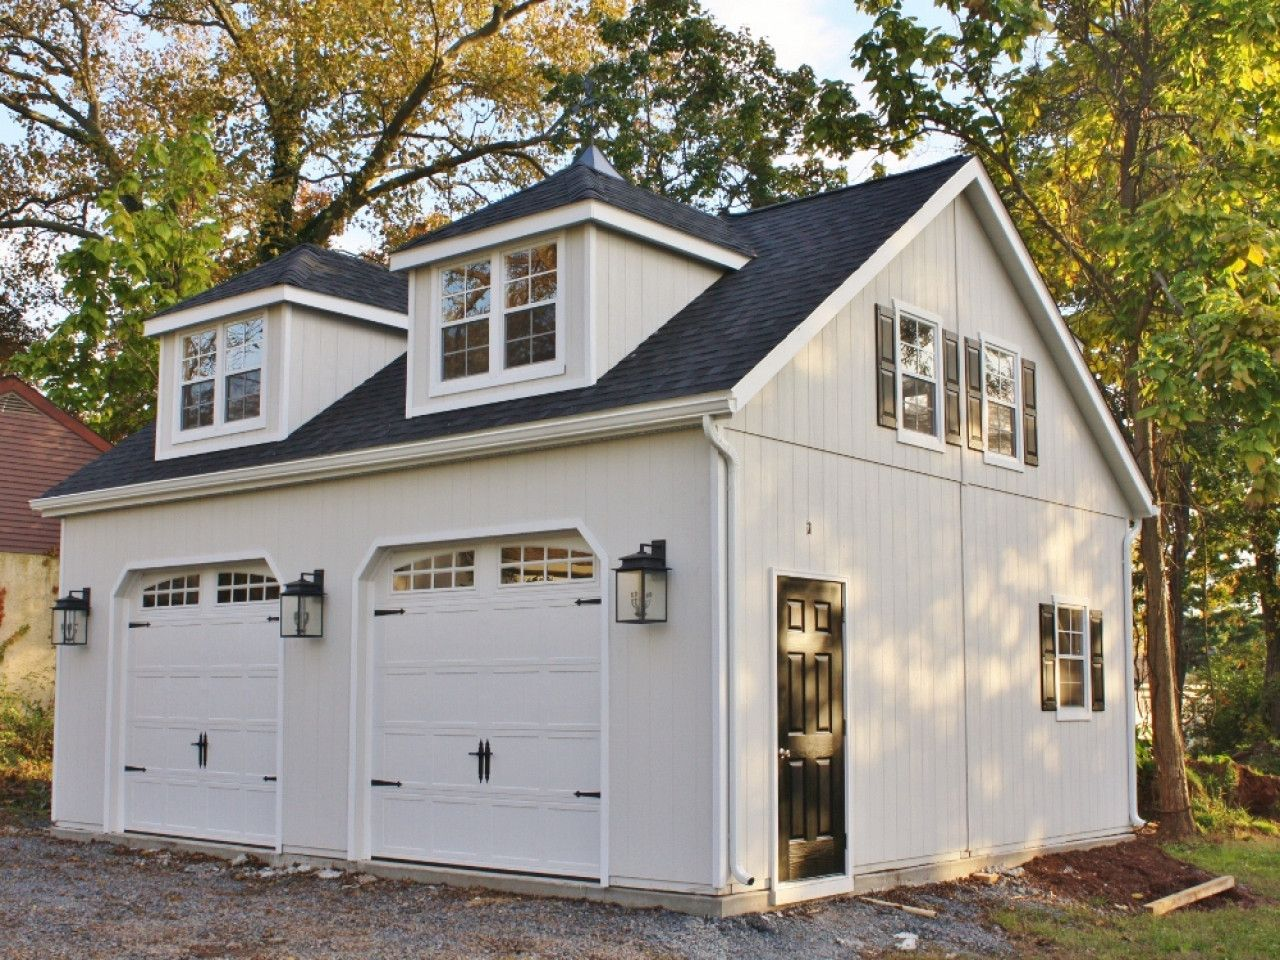 Coach House Garage Plans New Vintage Room Designs Prefab Carriage House Garage Carriage House Plans Carriage House Garage Carriage House